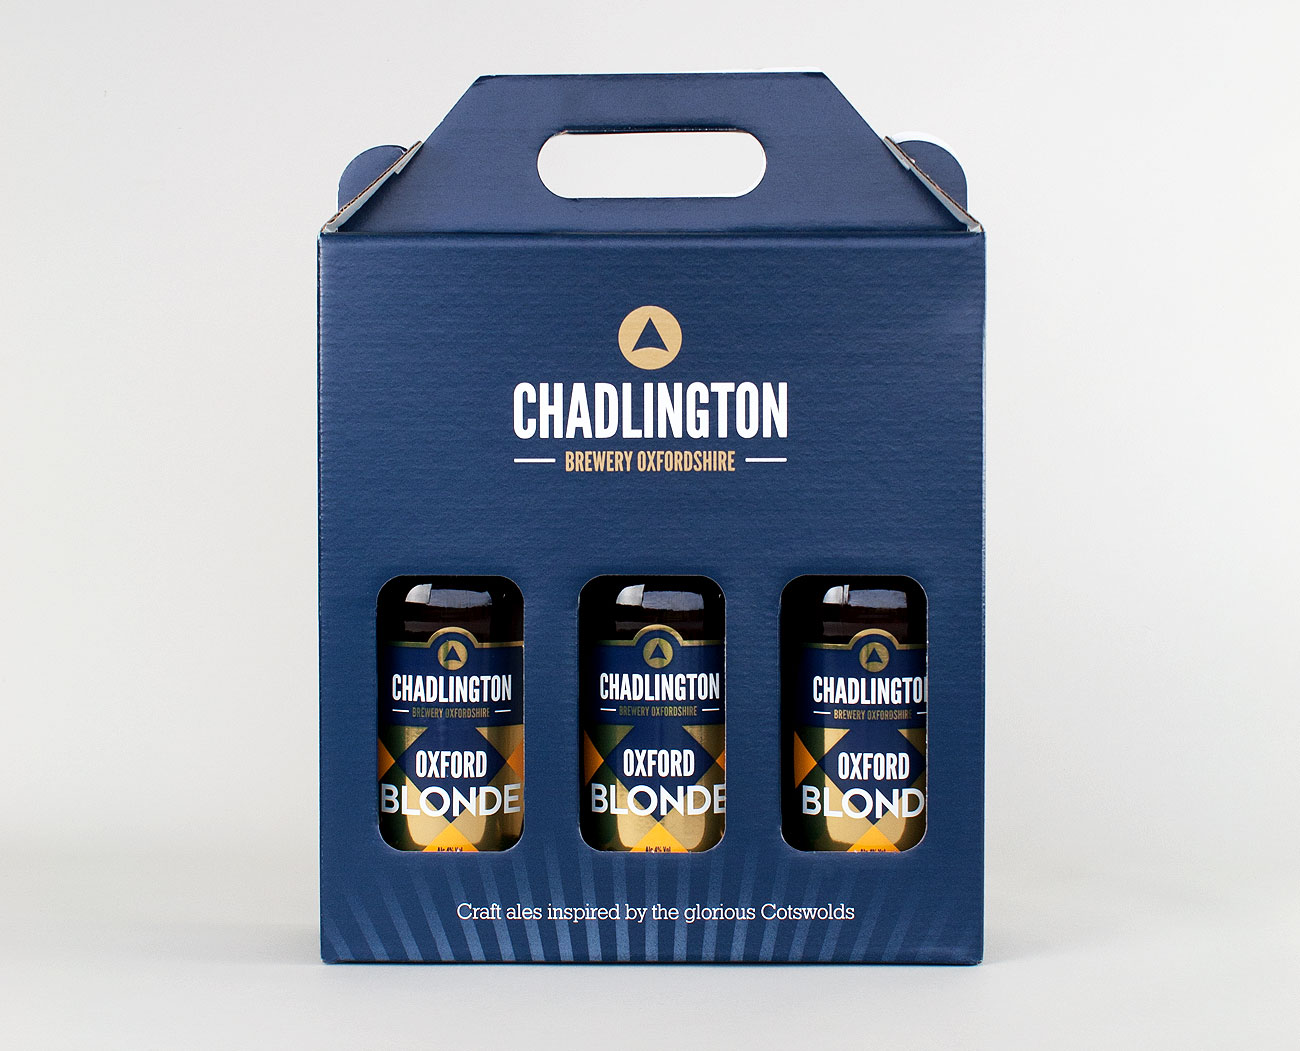 Chadlington Brewery three bottle packaging